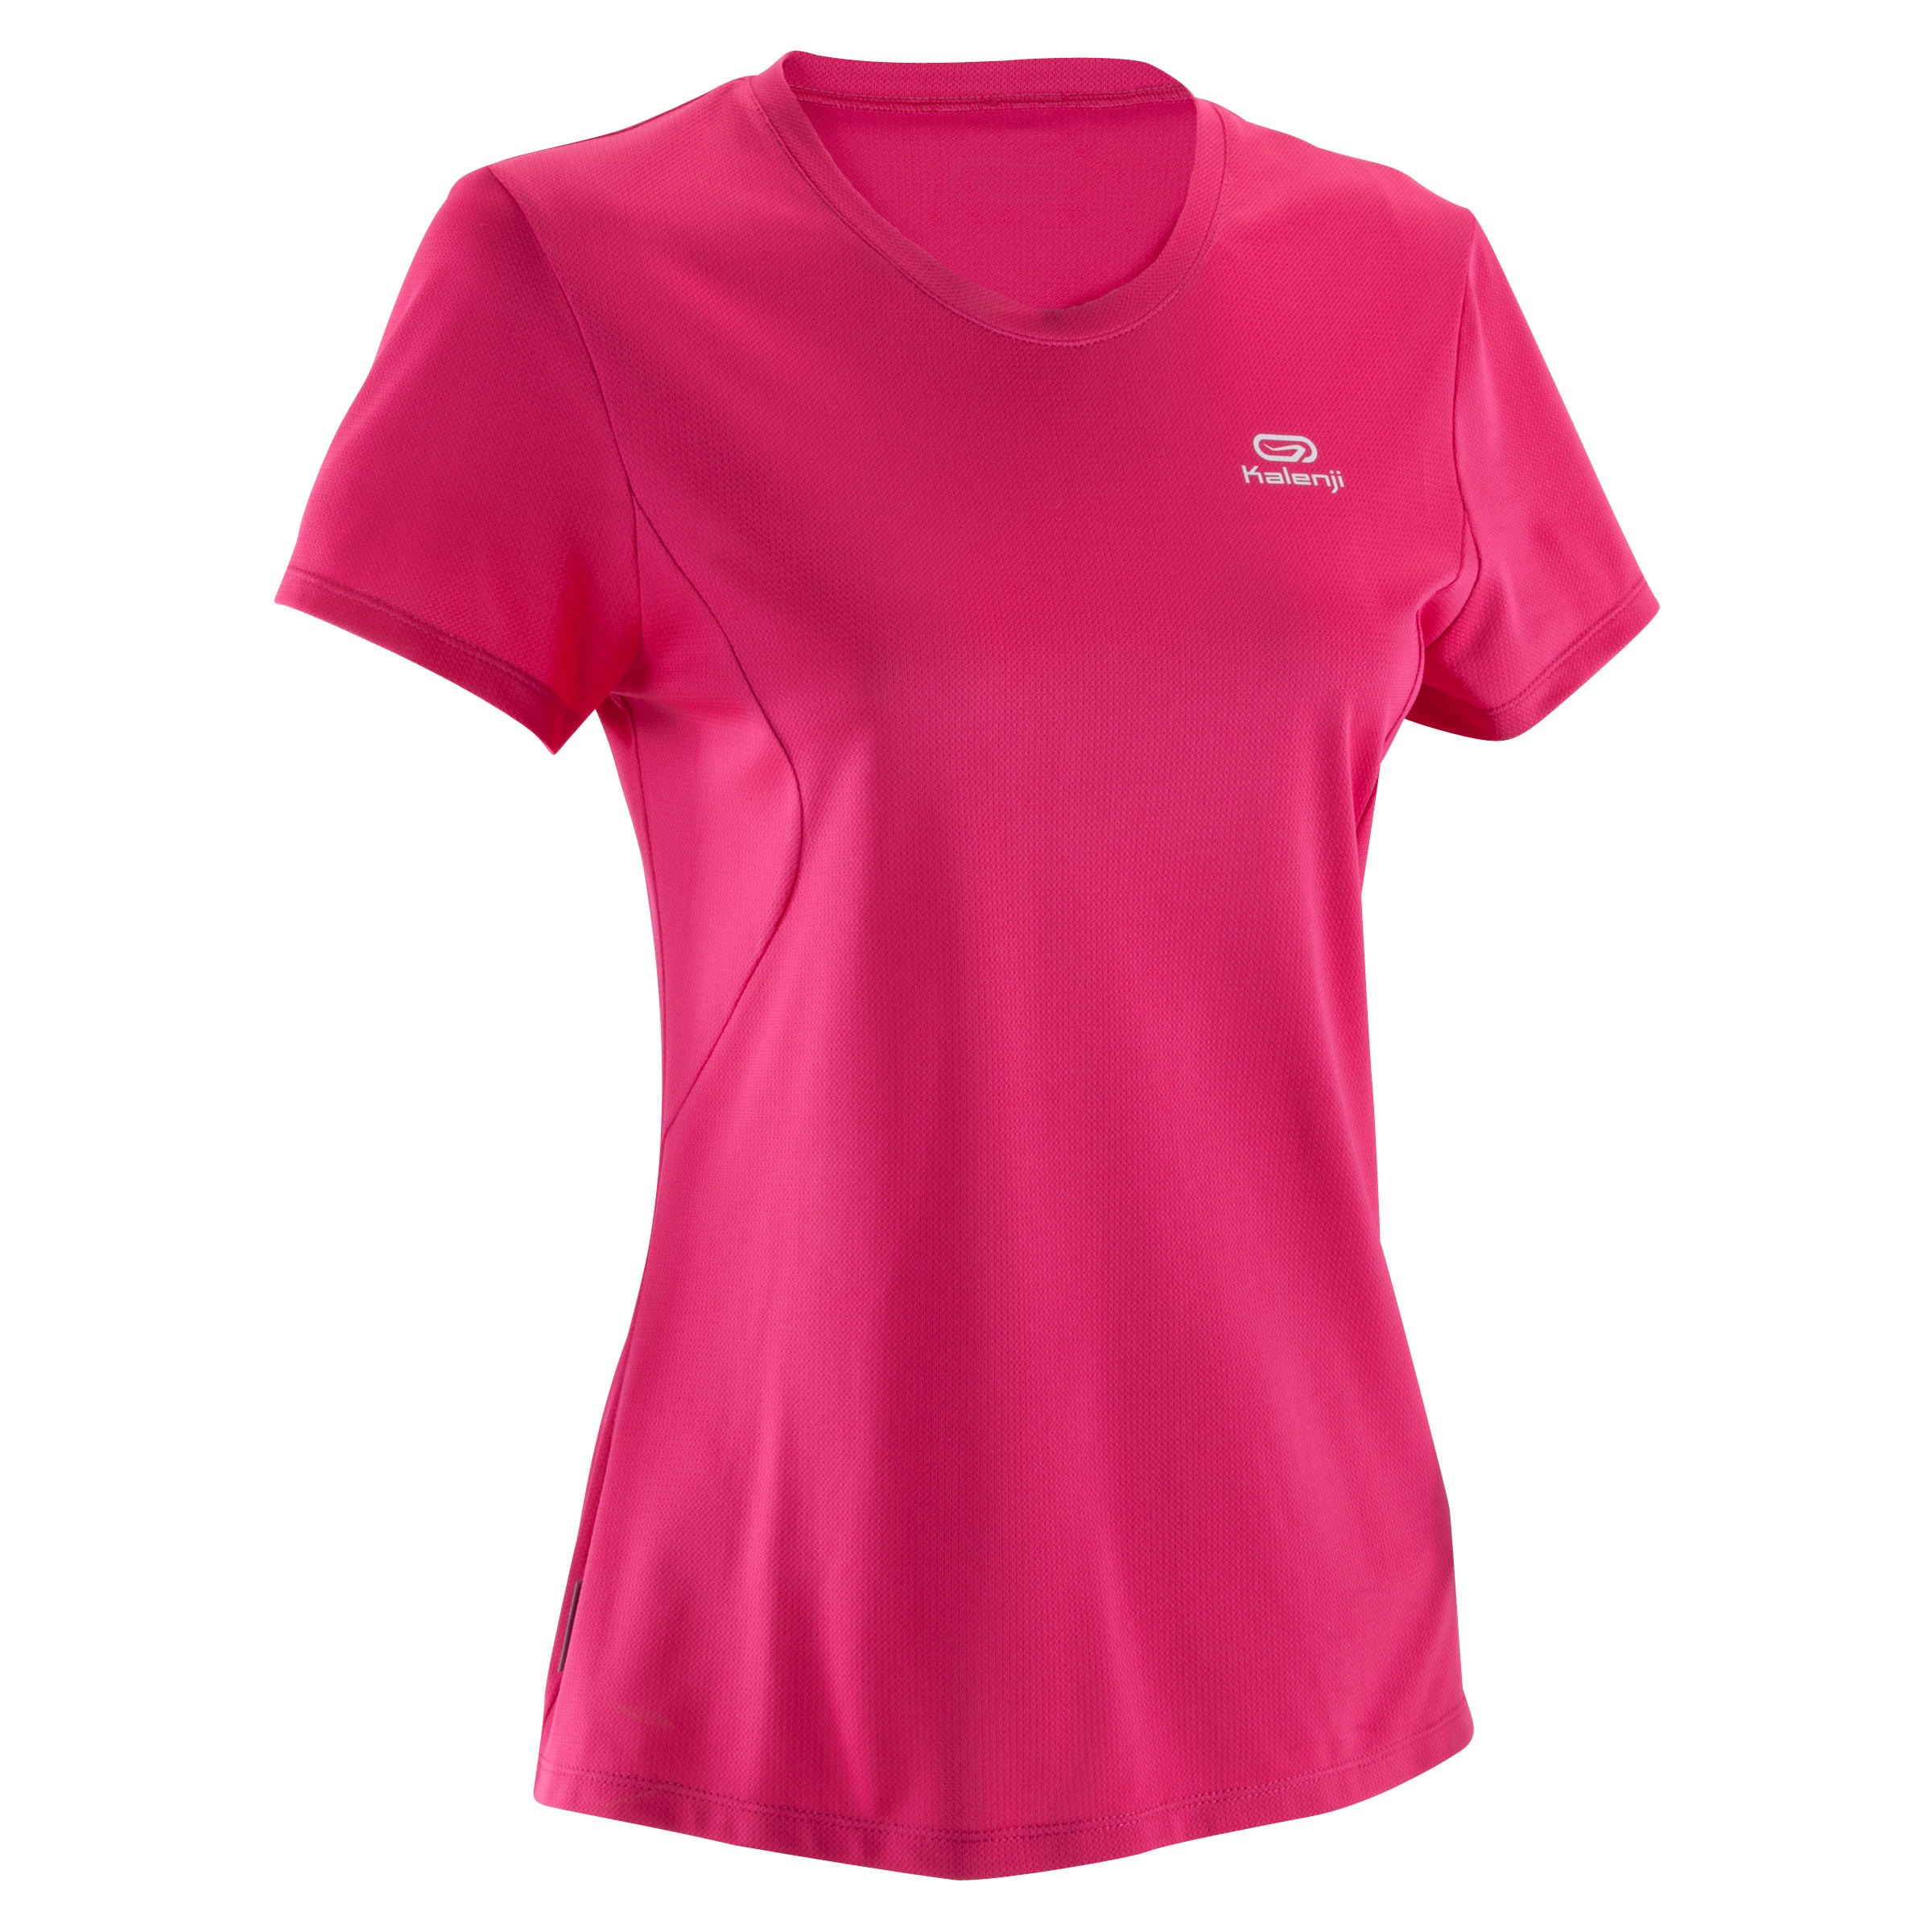 T-SHIRT JOGGING RUN DRY FEMME ROSE